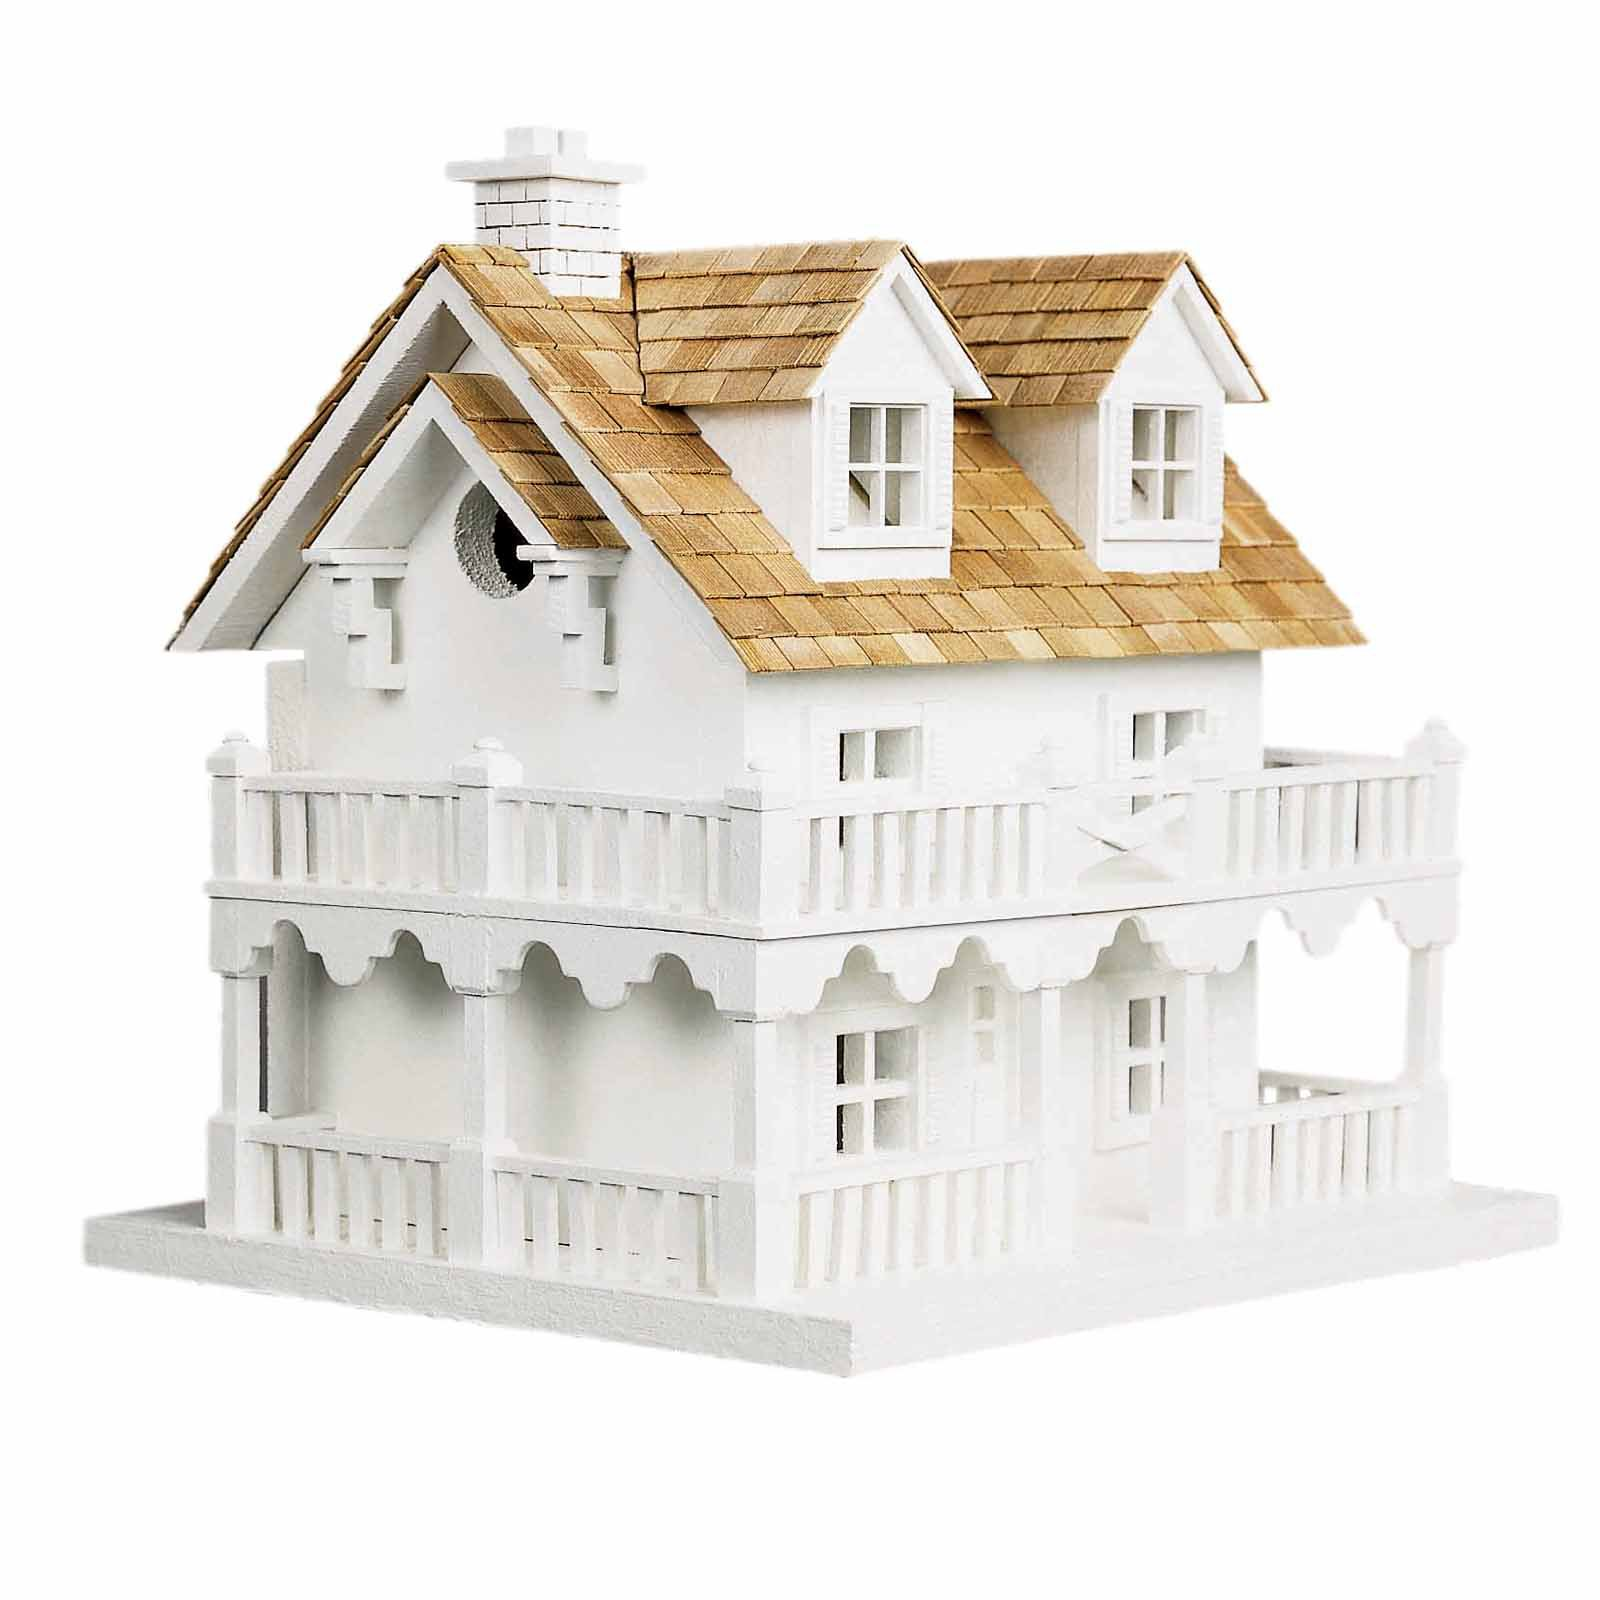 Home Bazaar Cape Cod Birdhouse by Home Bazaar